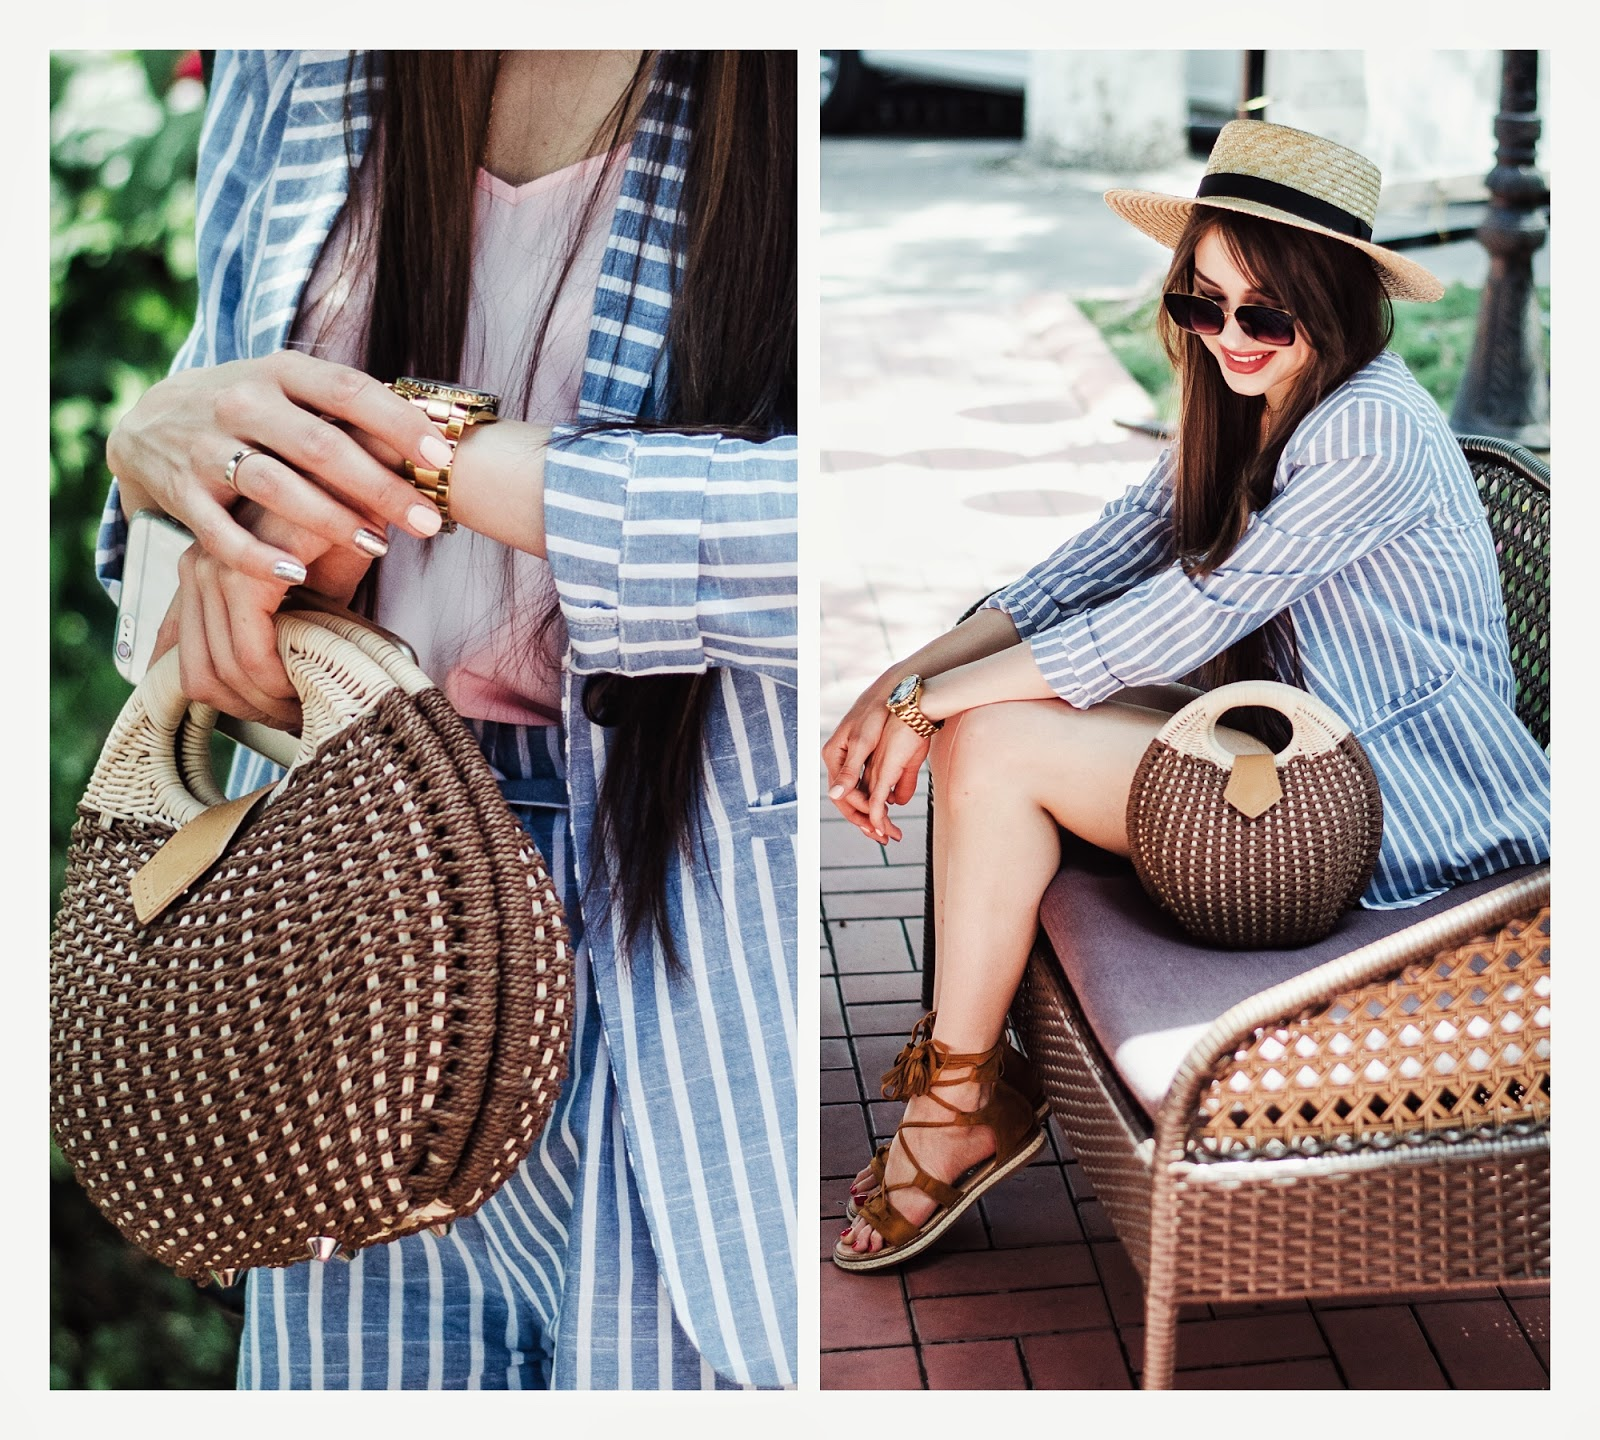 fashion blogger diyorasnotes diyora beta suit straw hat asos shorts summer outfit tote bag sandals style look